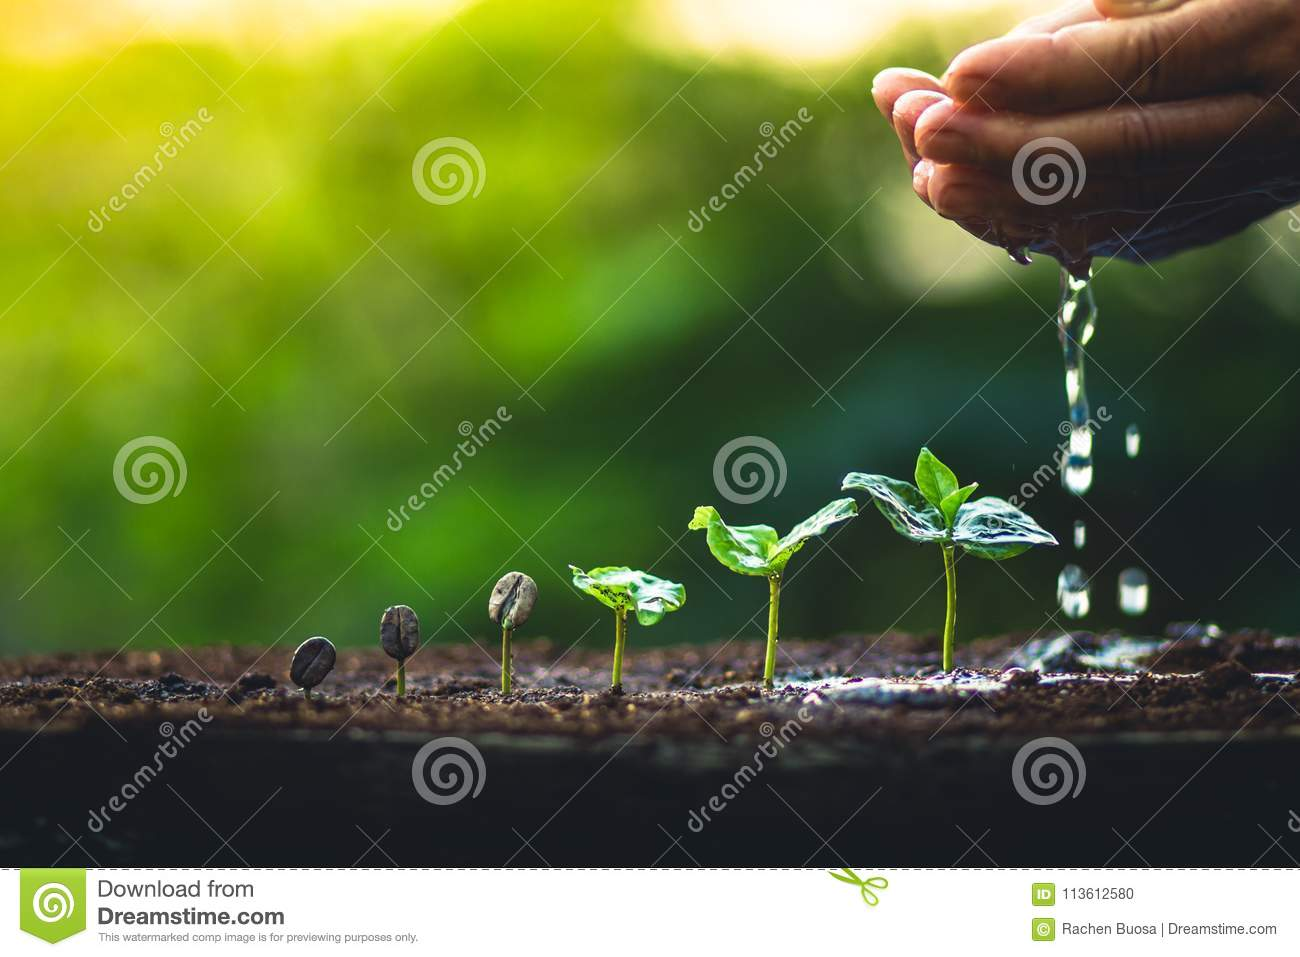 Grow coffee beans Plant coffee tree Hand care and watering the trees Evening light in nature